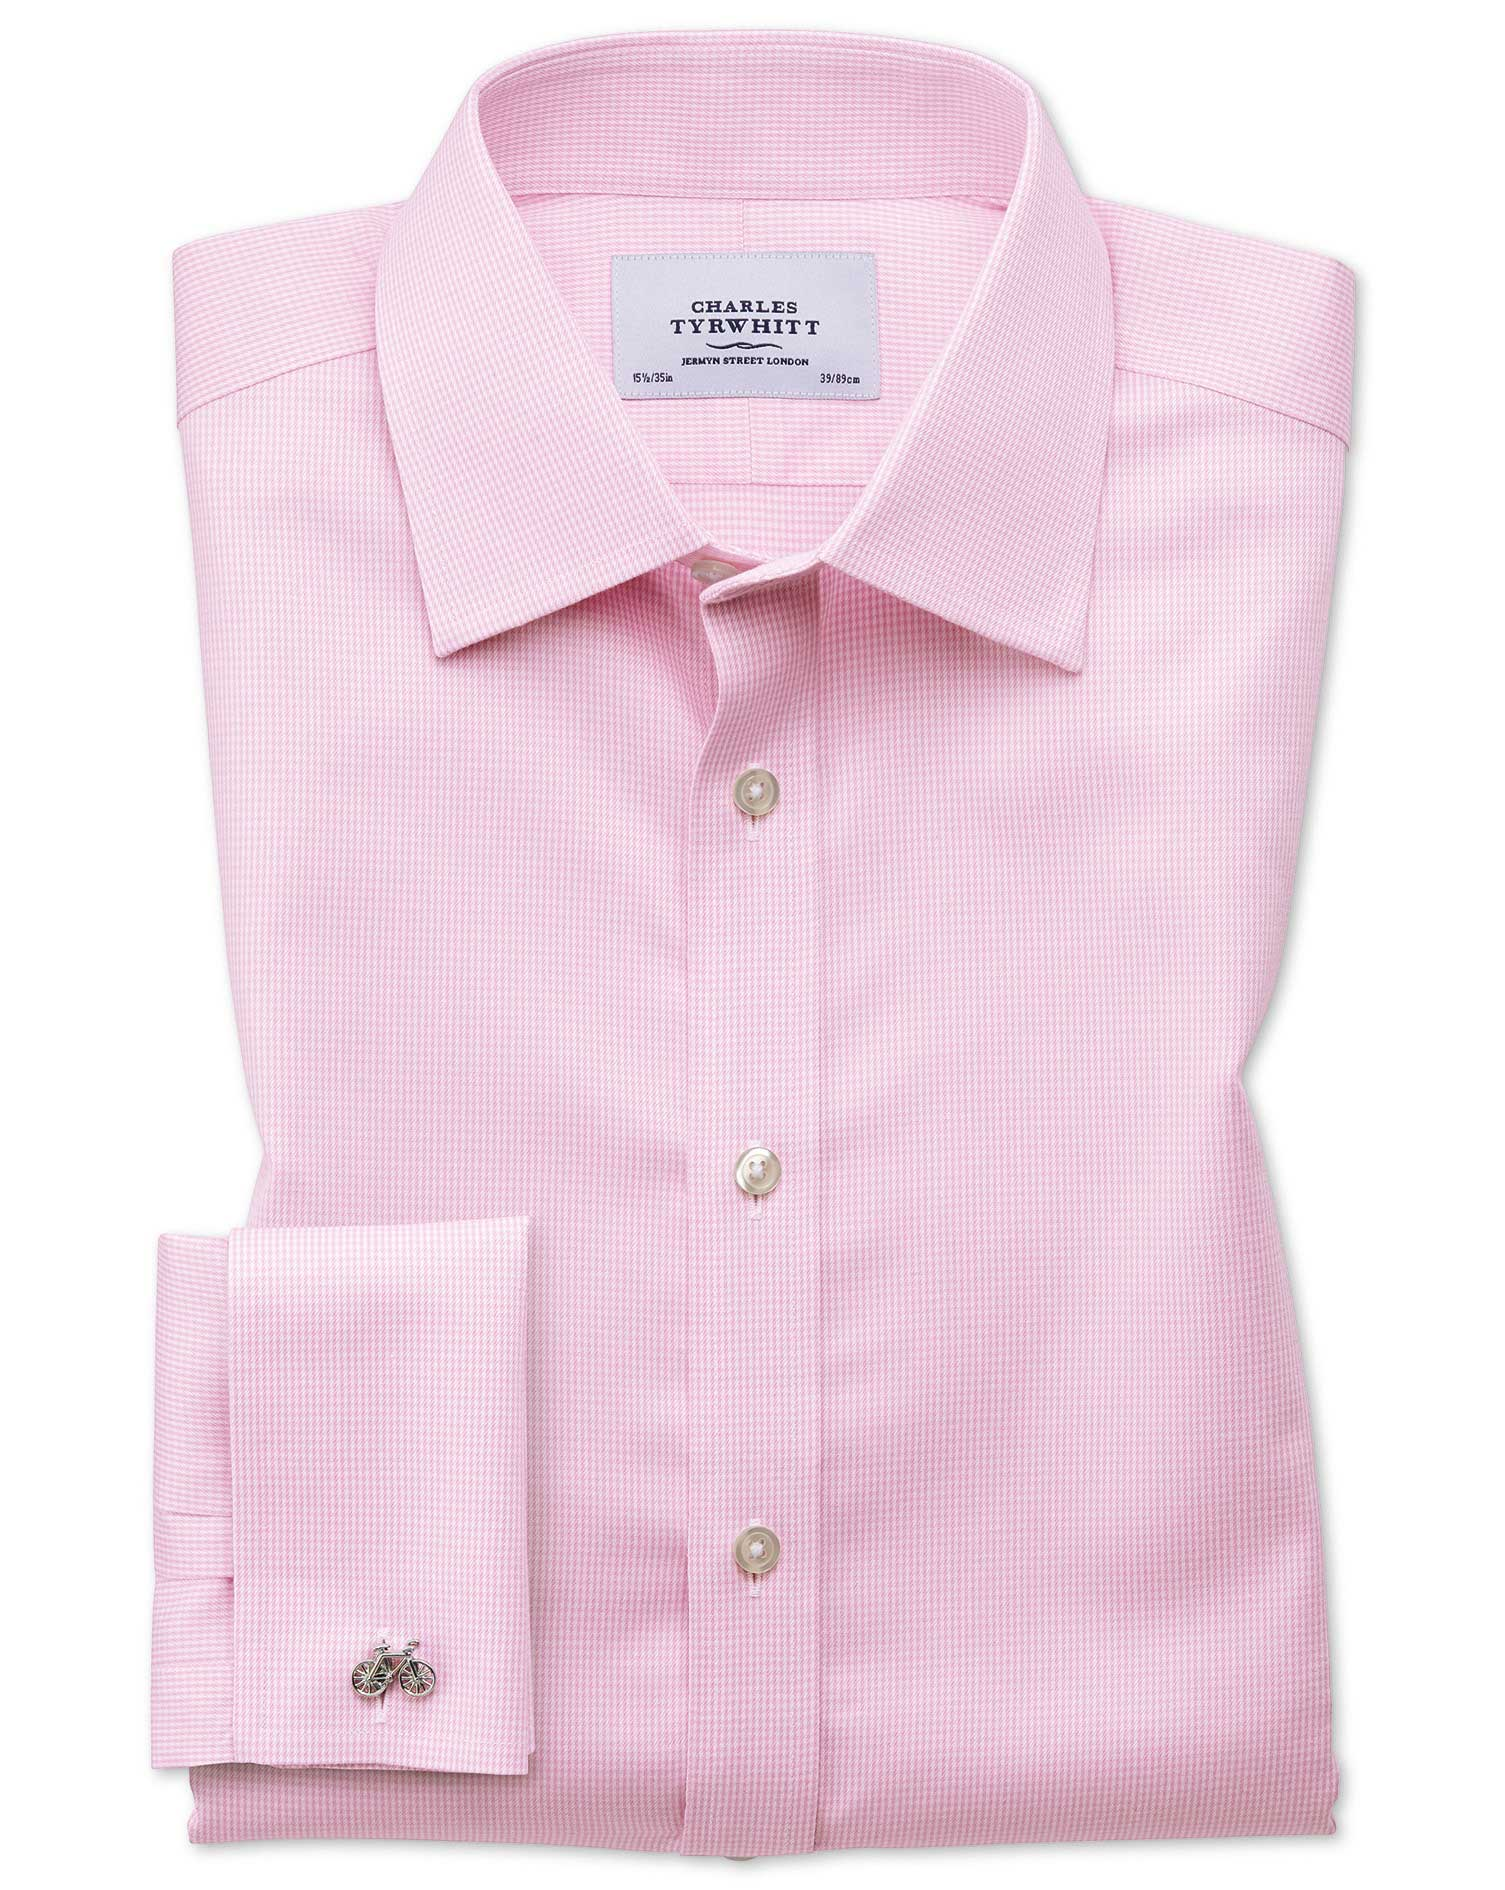 Slim Fit Non-Iron Puppytooth Light Pink Cotton Formal Shirt Single Cuff Size 16/32 by Charles Tyrwhi